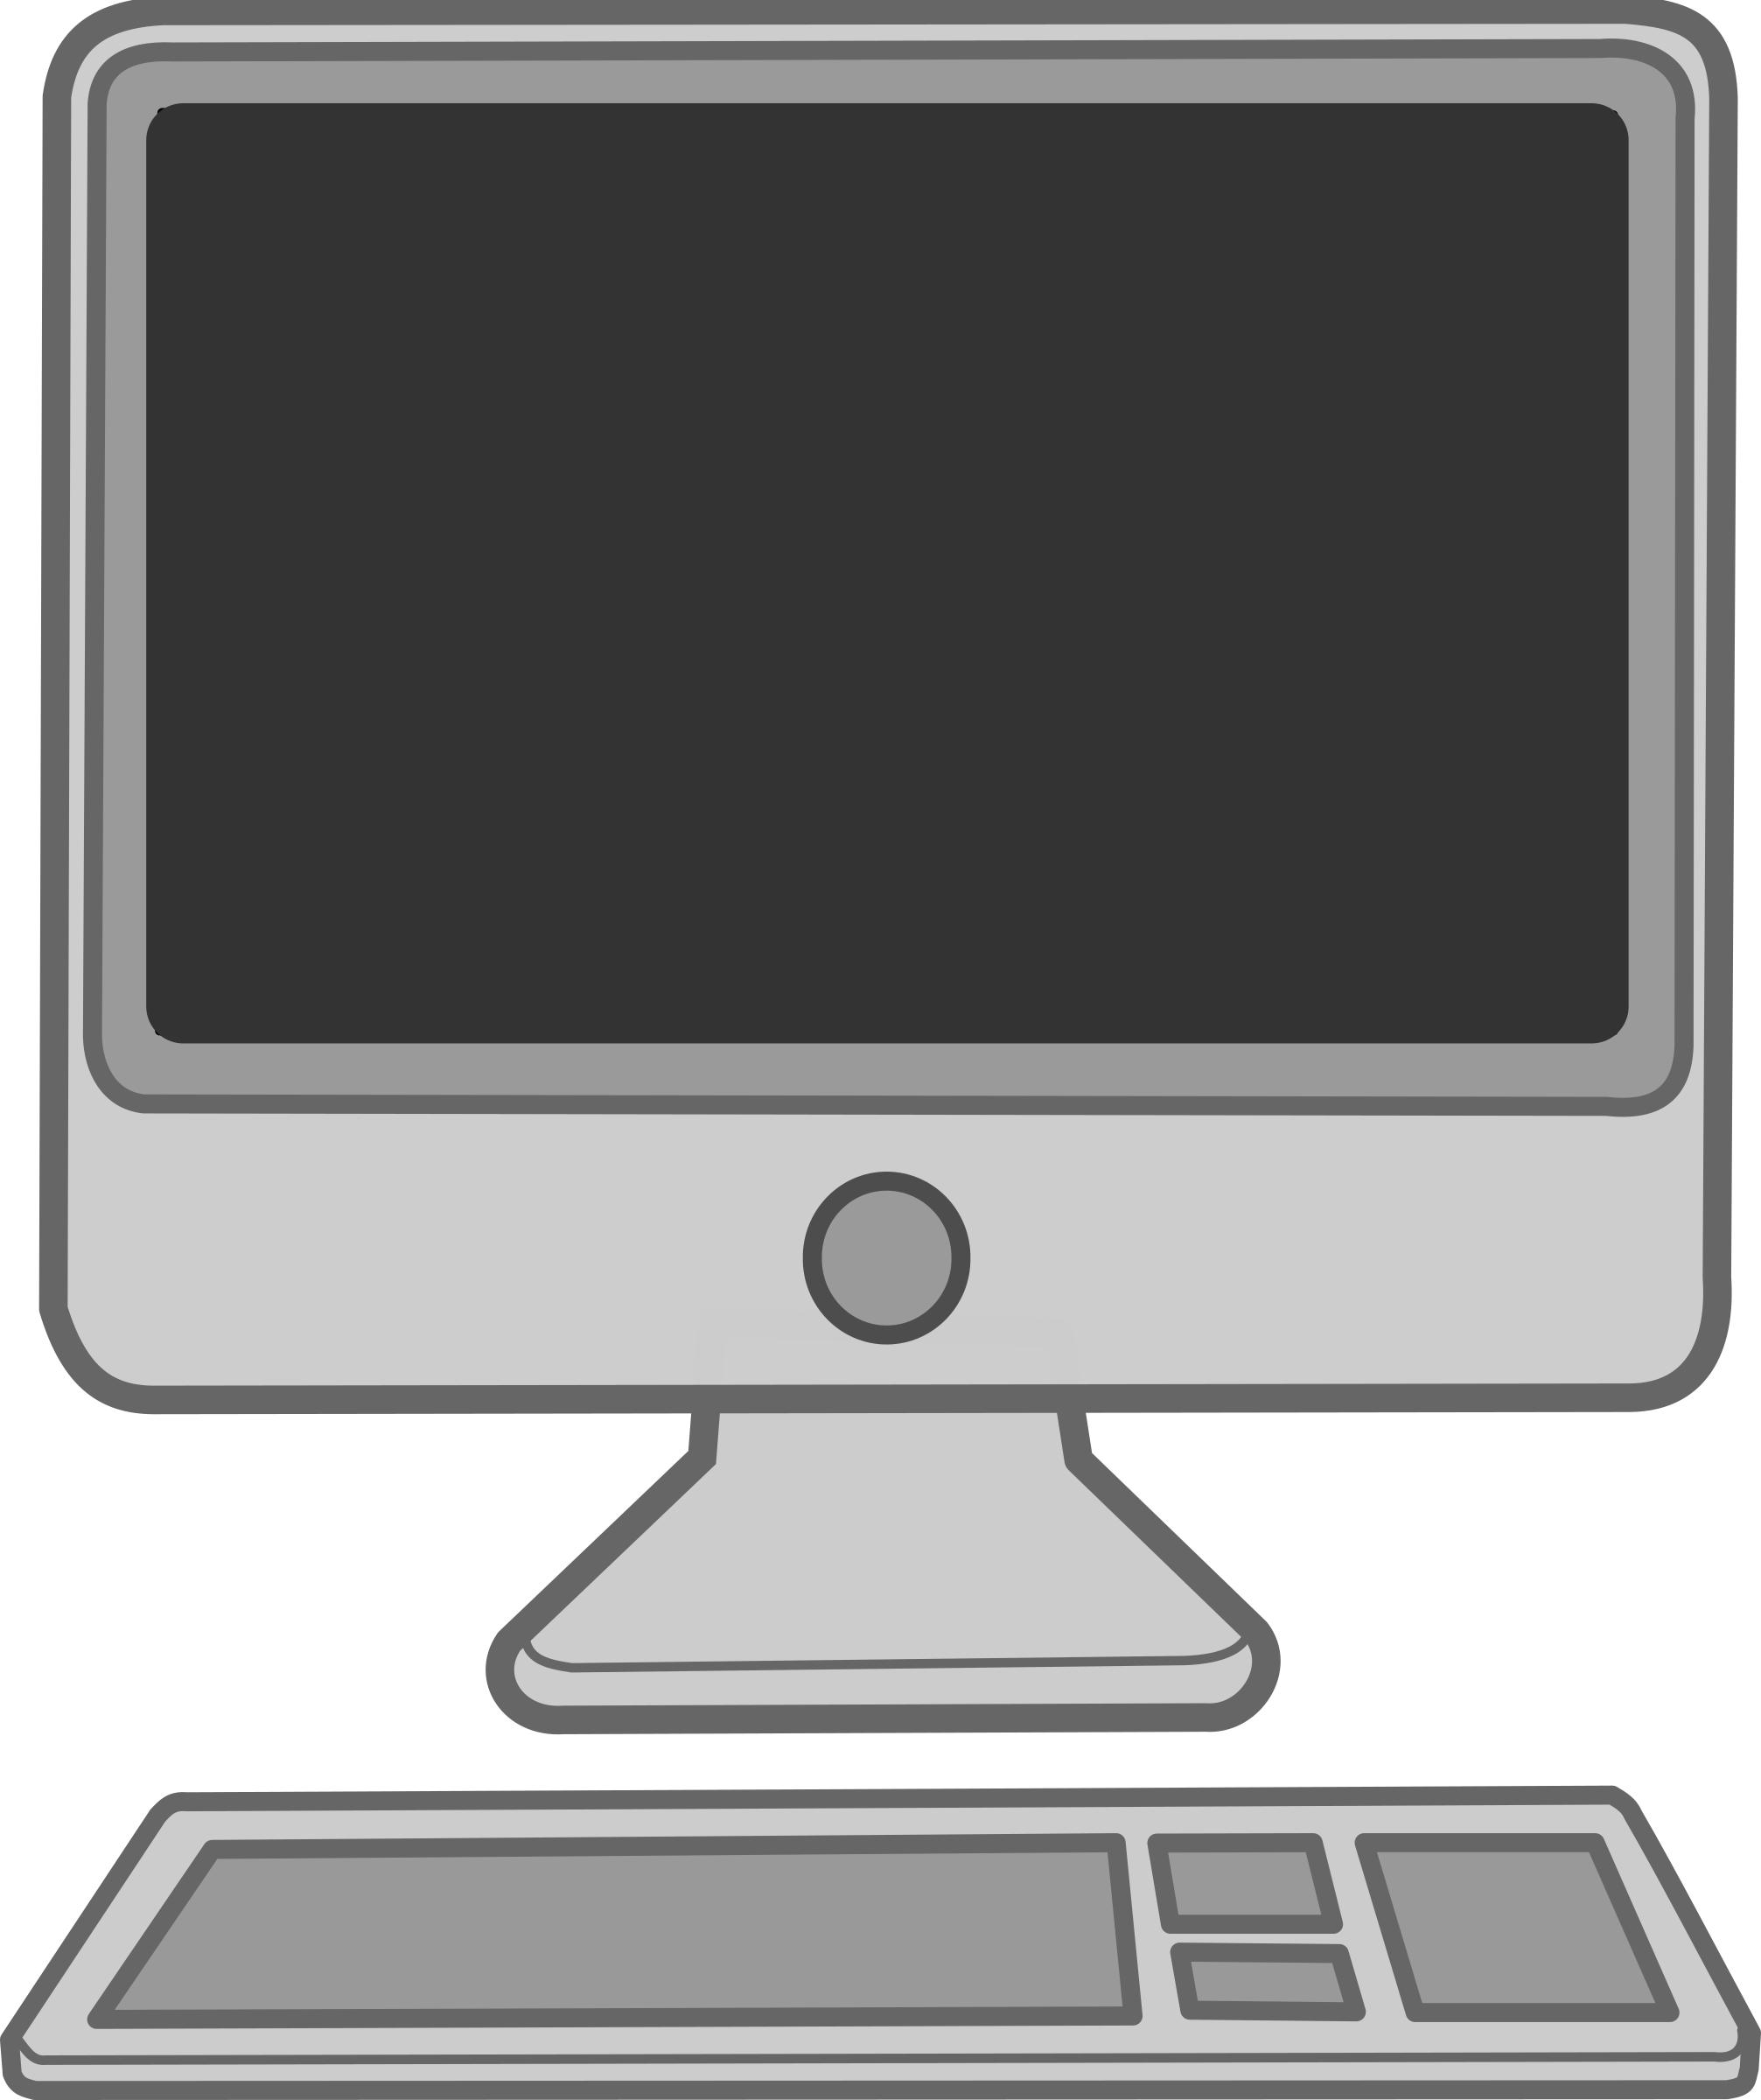 Computer clipart #18, Download drawings